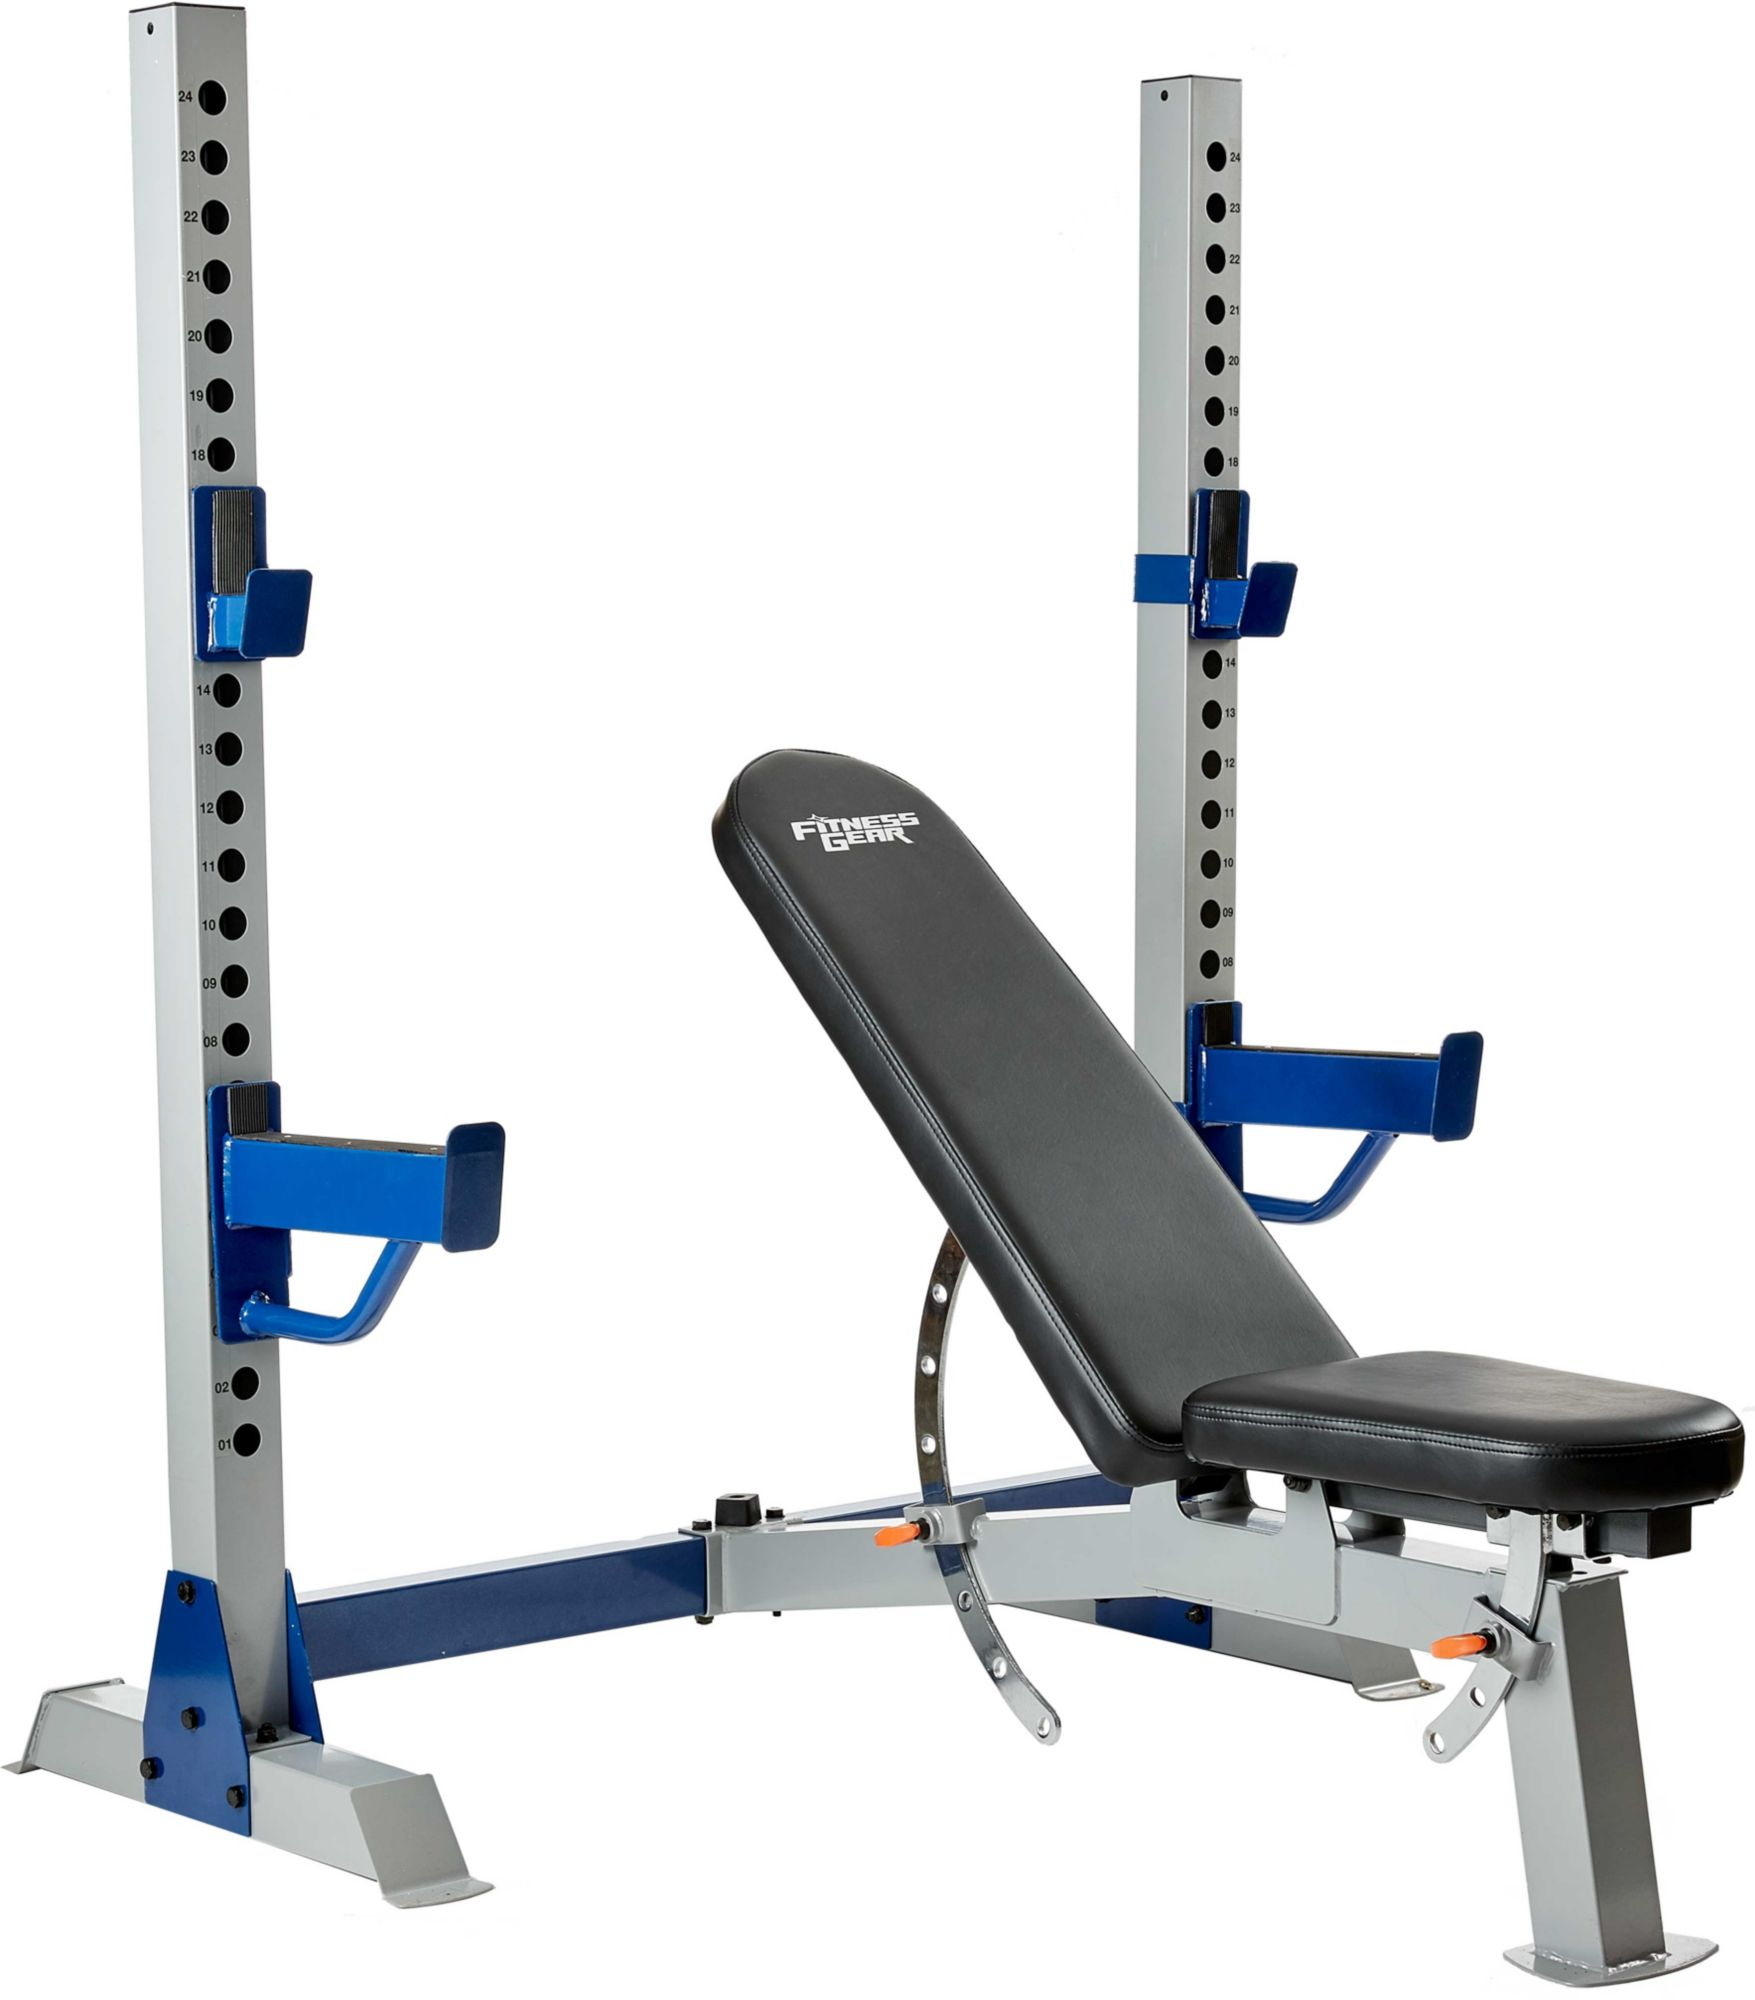 Fitness Gear 300 lb Olympic Weight Set DICKS Sporting Goods